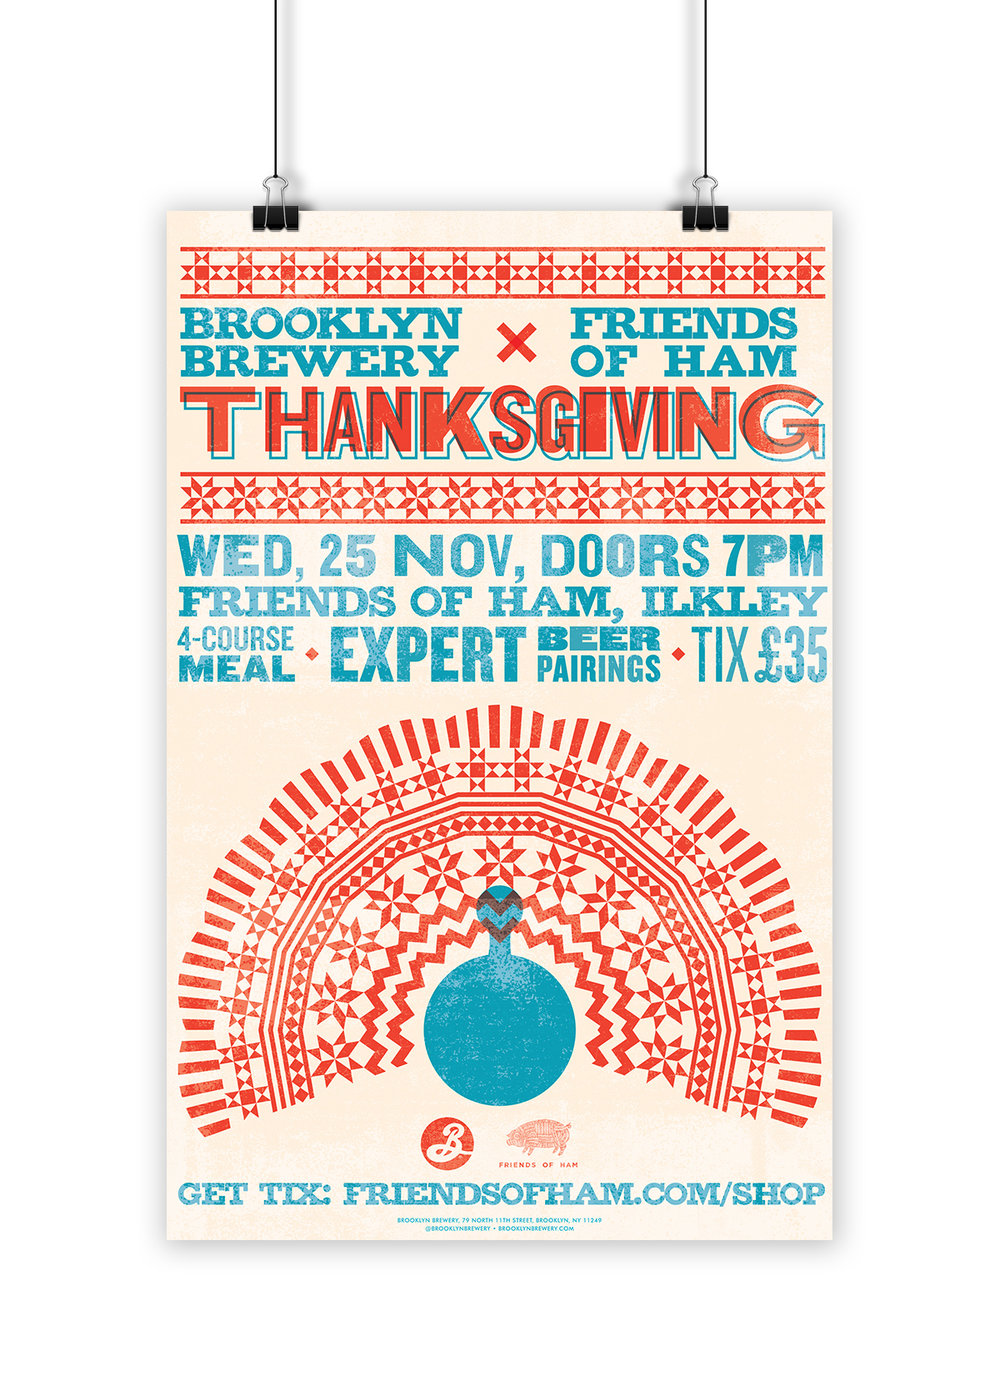 Letterpress print poster design for a Thanksgiving themed event for Brooklyn Brewery.